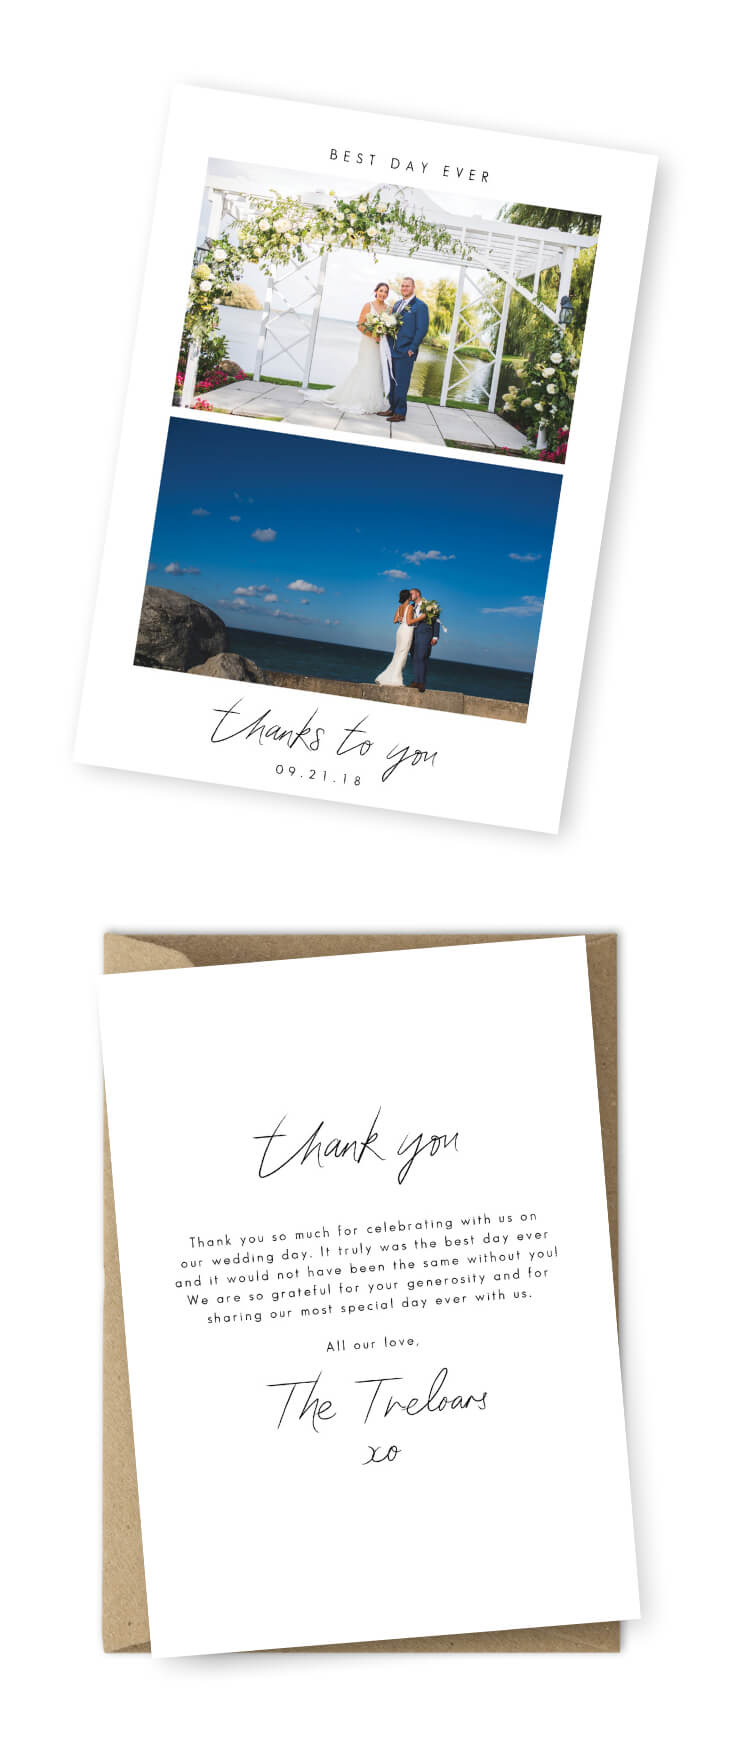 Wedding Thank You Cards Template - Calep.midnightpig.co Pertaining To Template For Wedding Thank You Cards